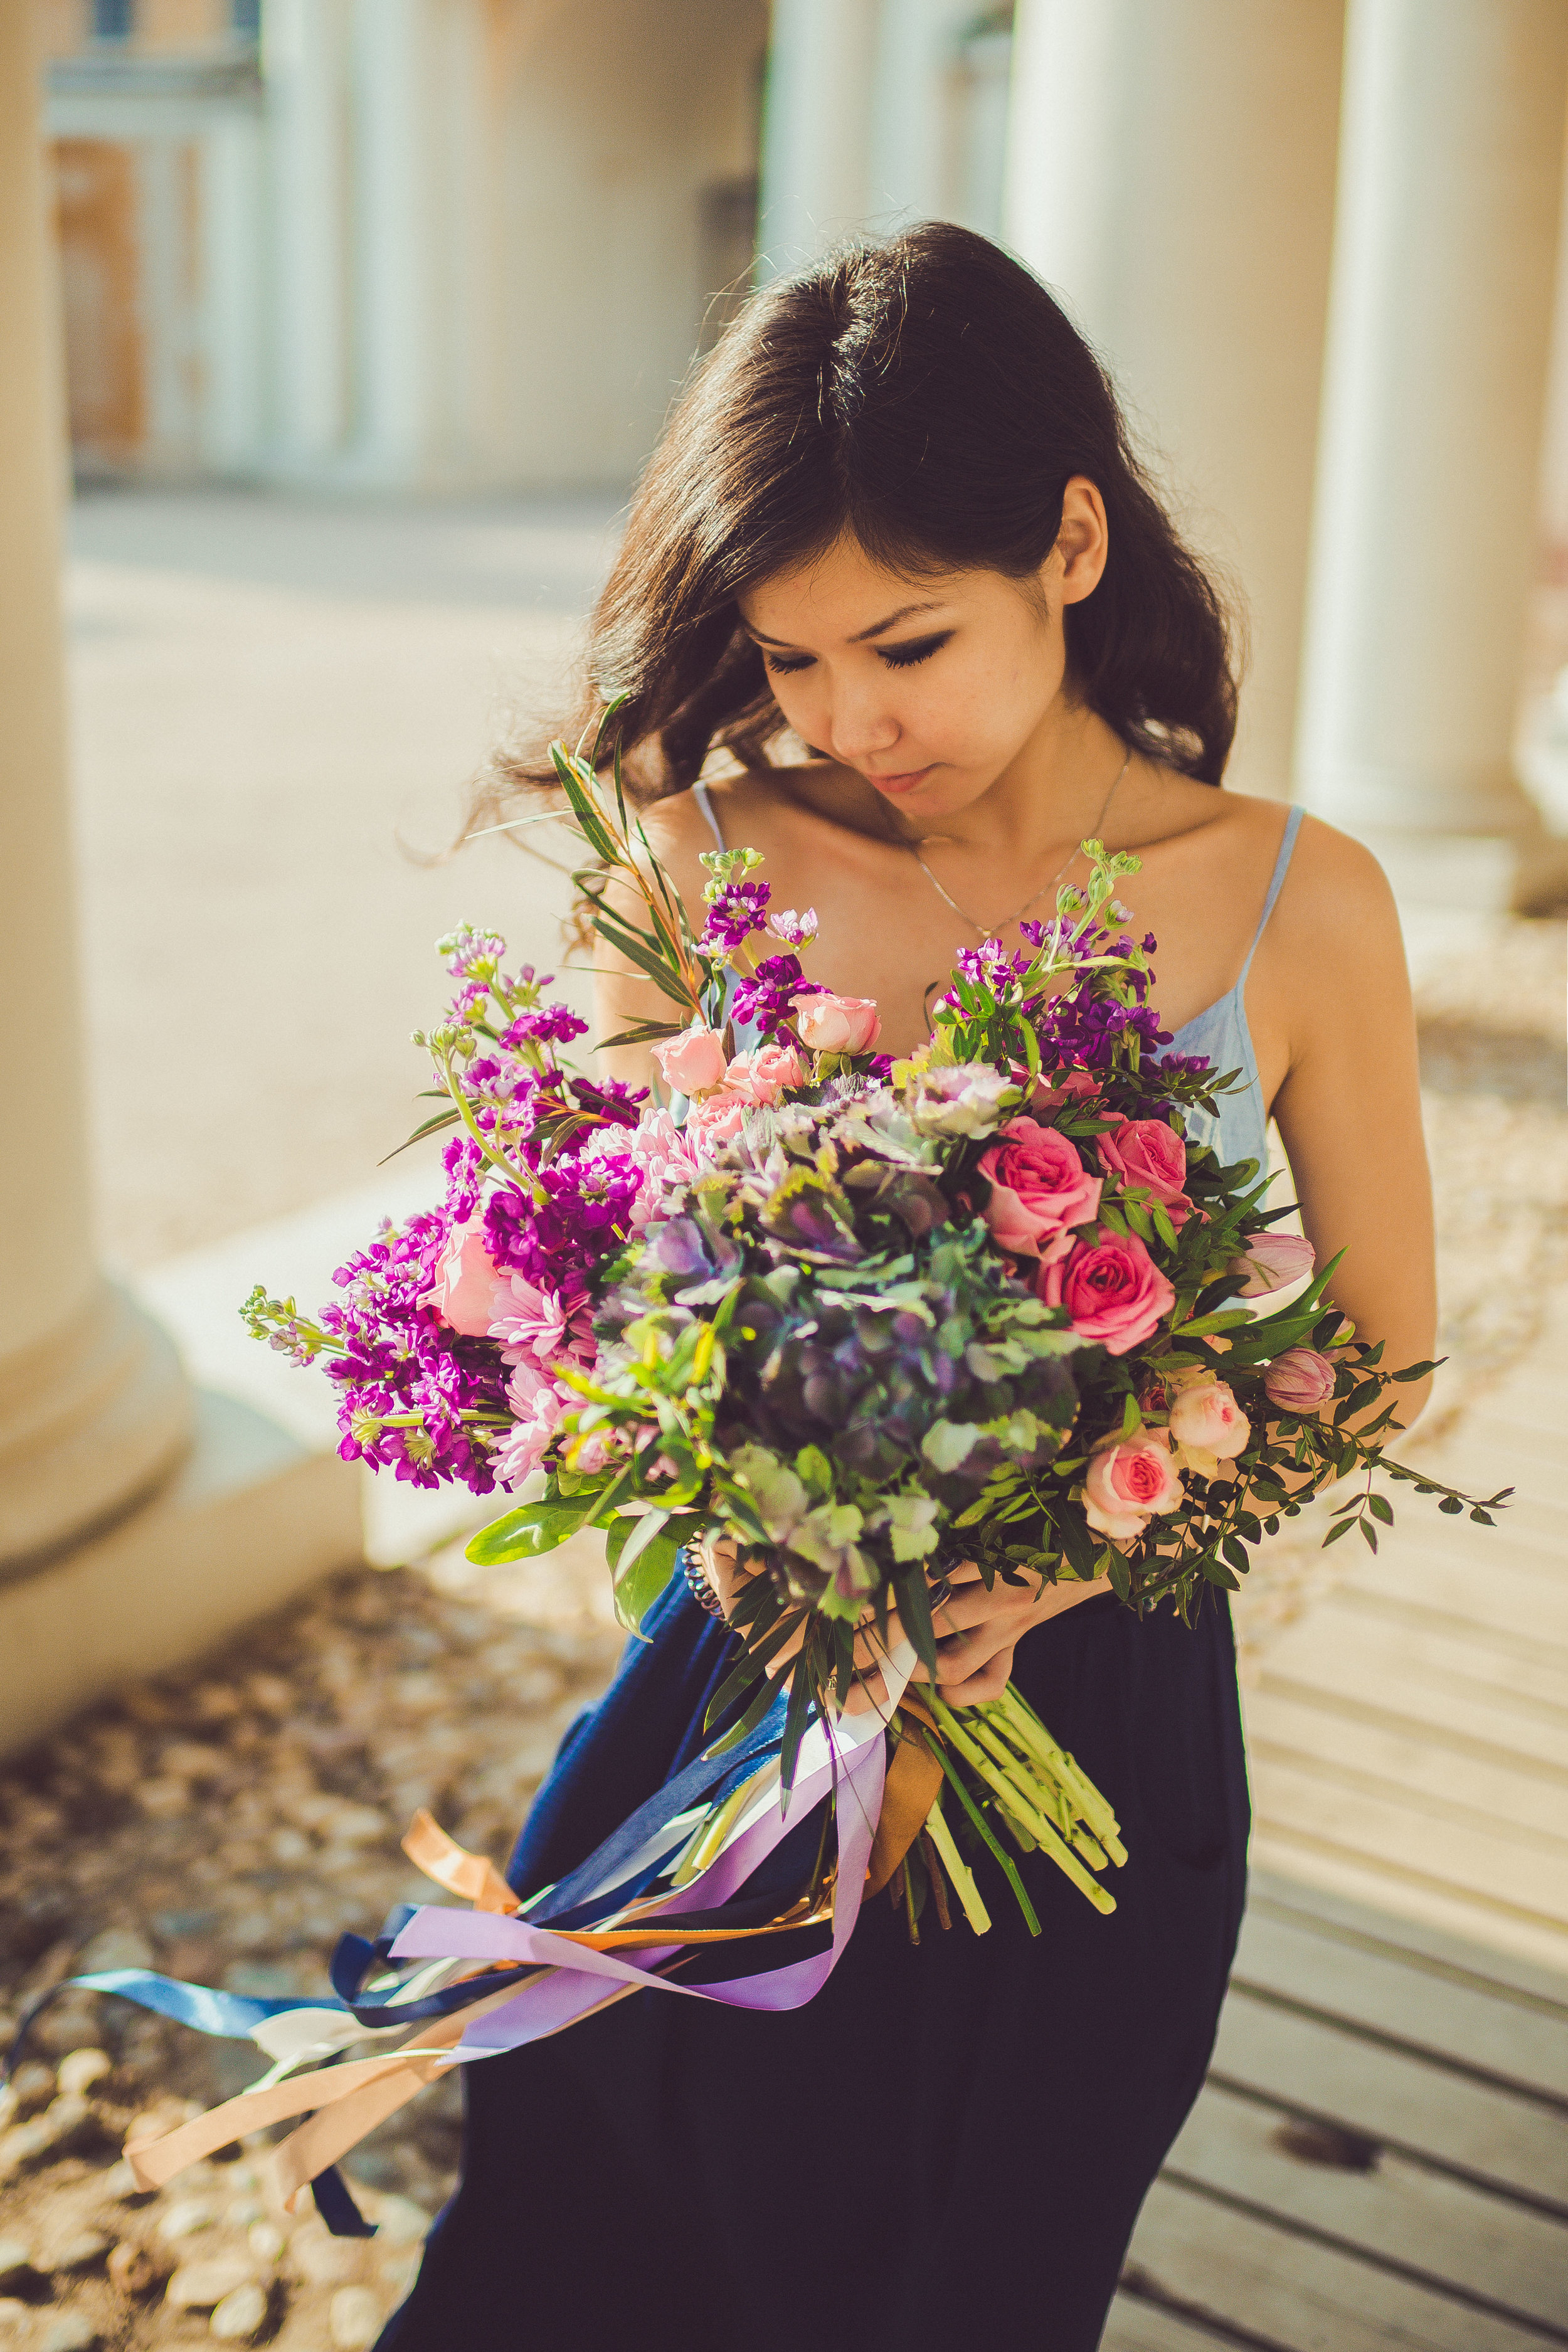 Phoebe Lo Events - Toronto Event Planner and Floral Designer 007.jpg